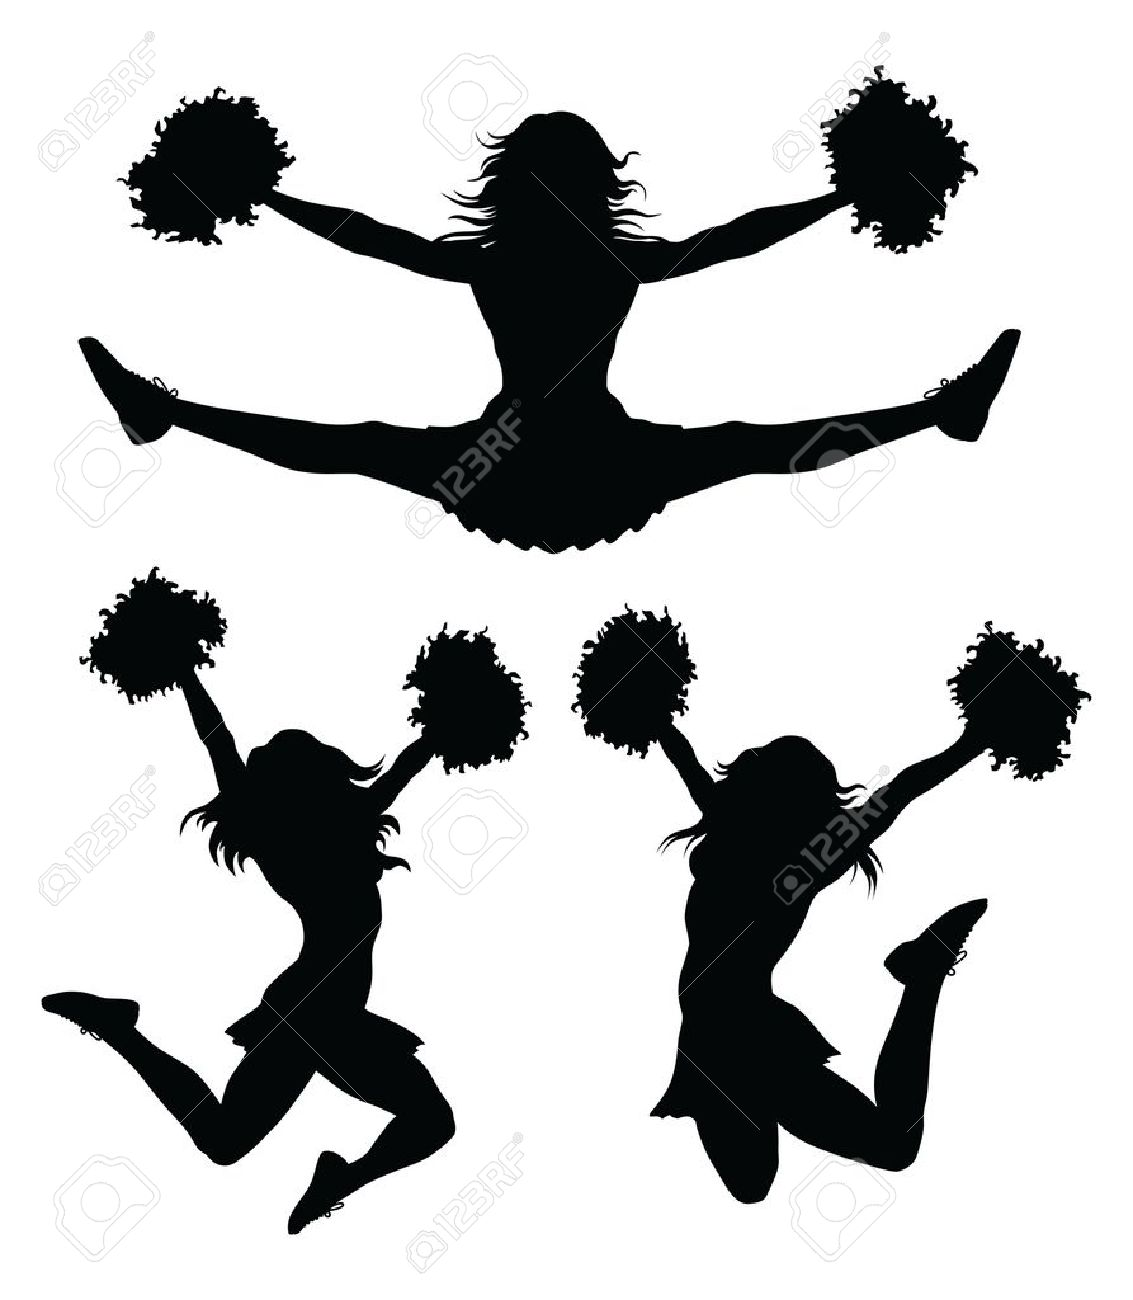 Cheer Jumps Silhouette Clipart-Cheer Jumps Silhouette Clipart-18